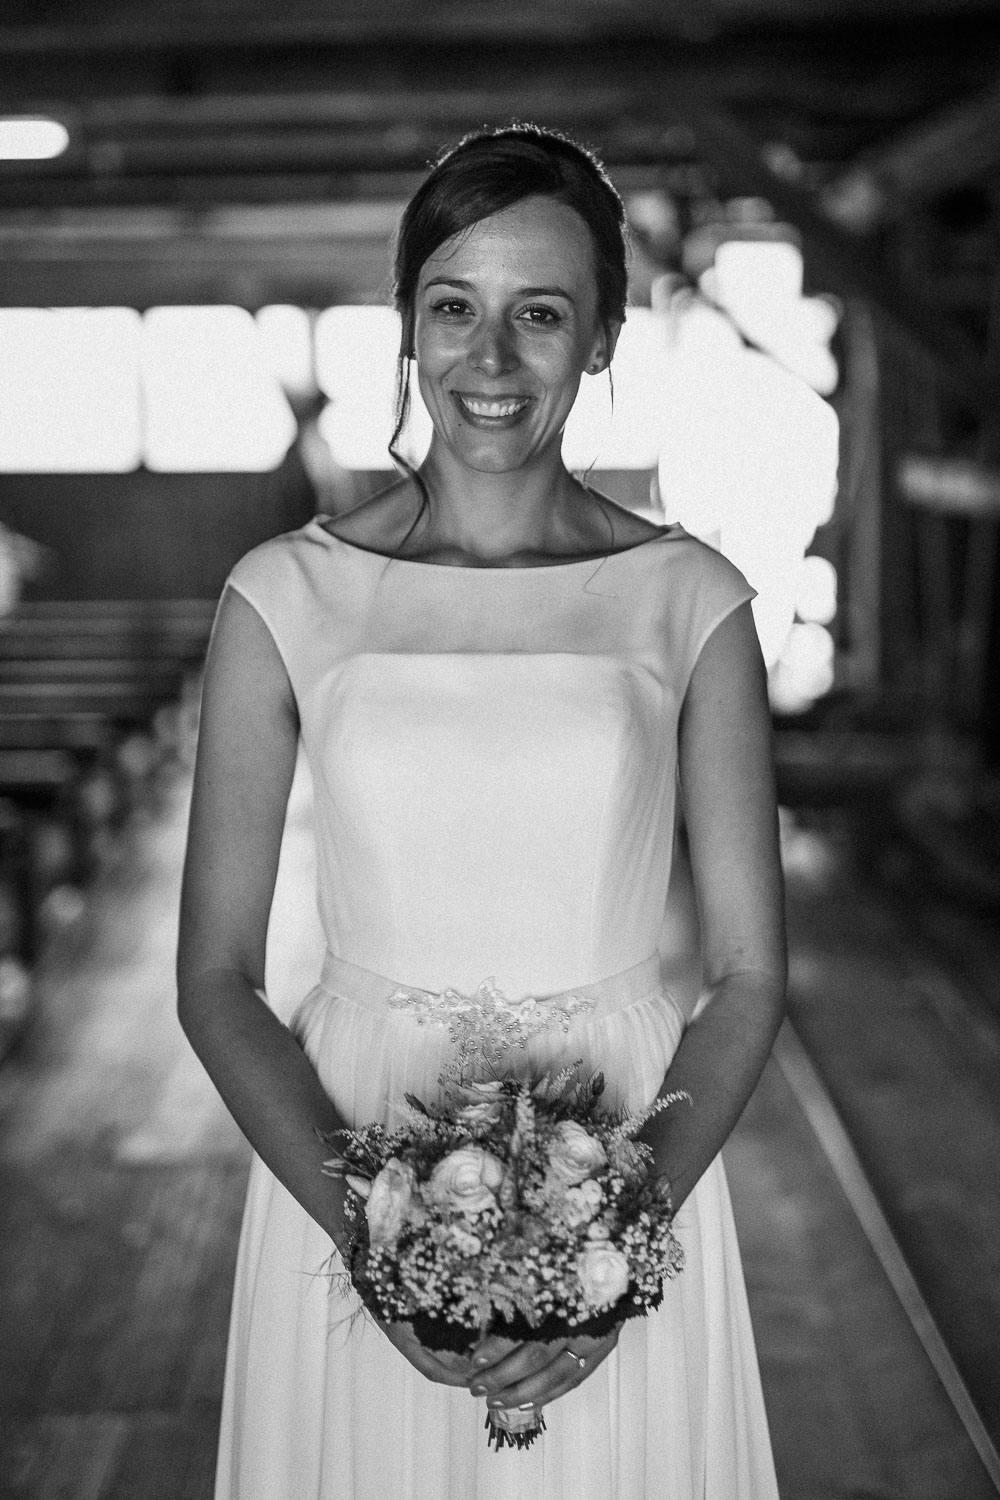 raissa simon photography destination wedding munich black forest barn 031 - Melanie + Sebastian